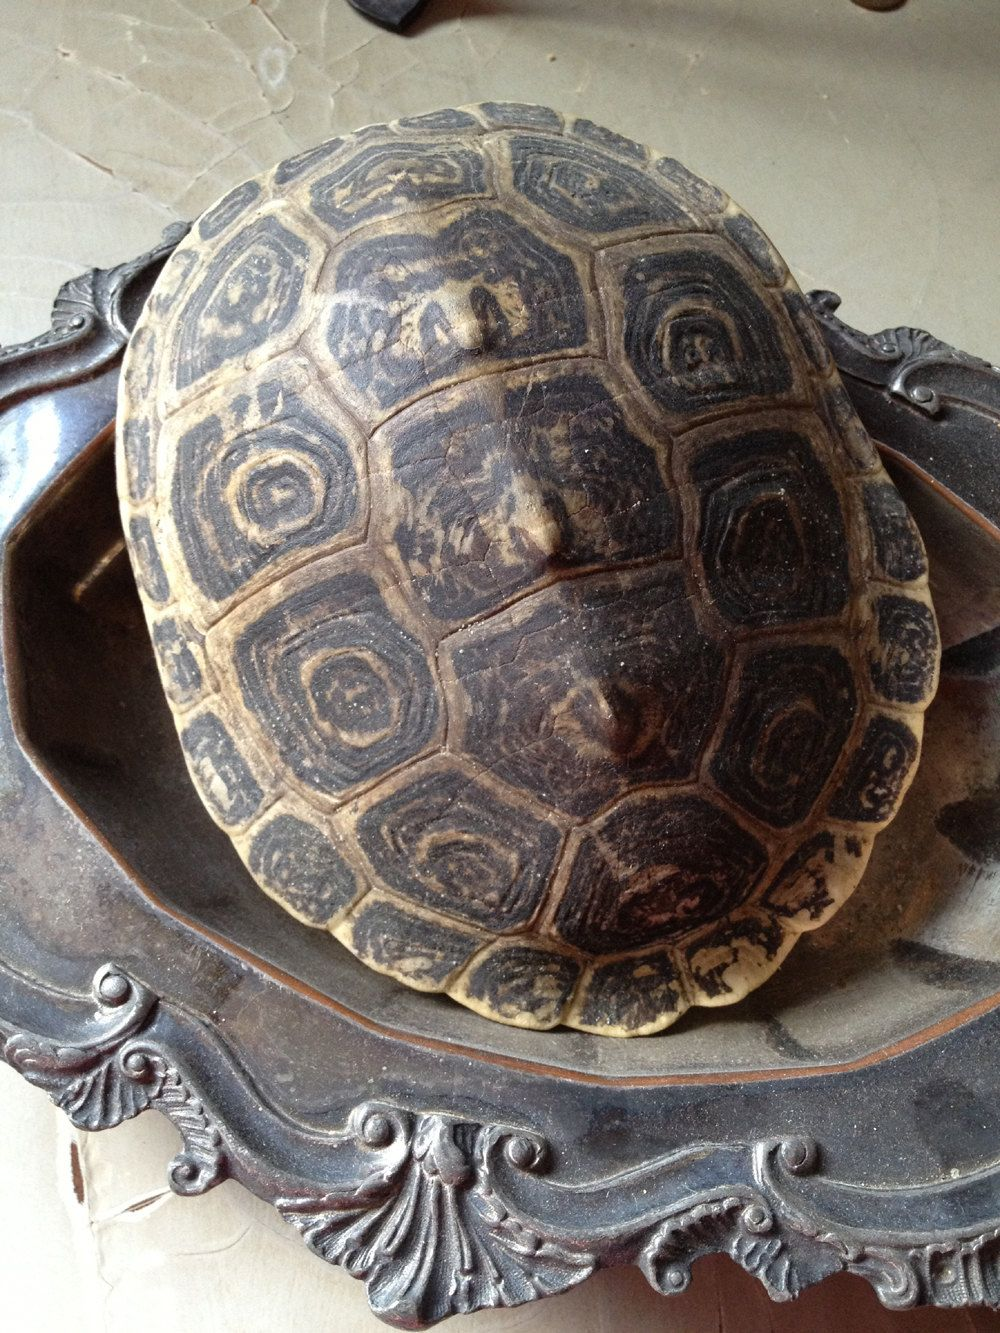 Turtle shell. The structure of the tortoiseshell